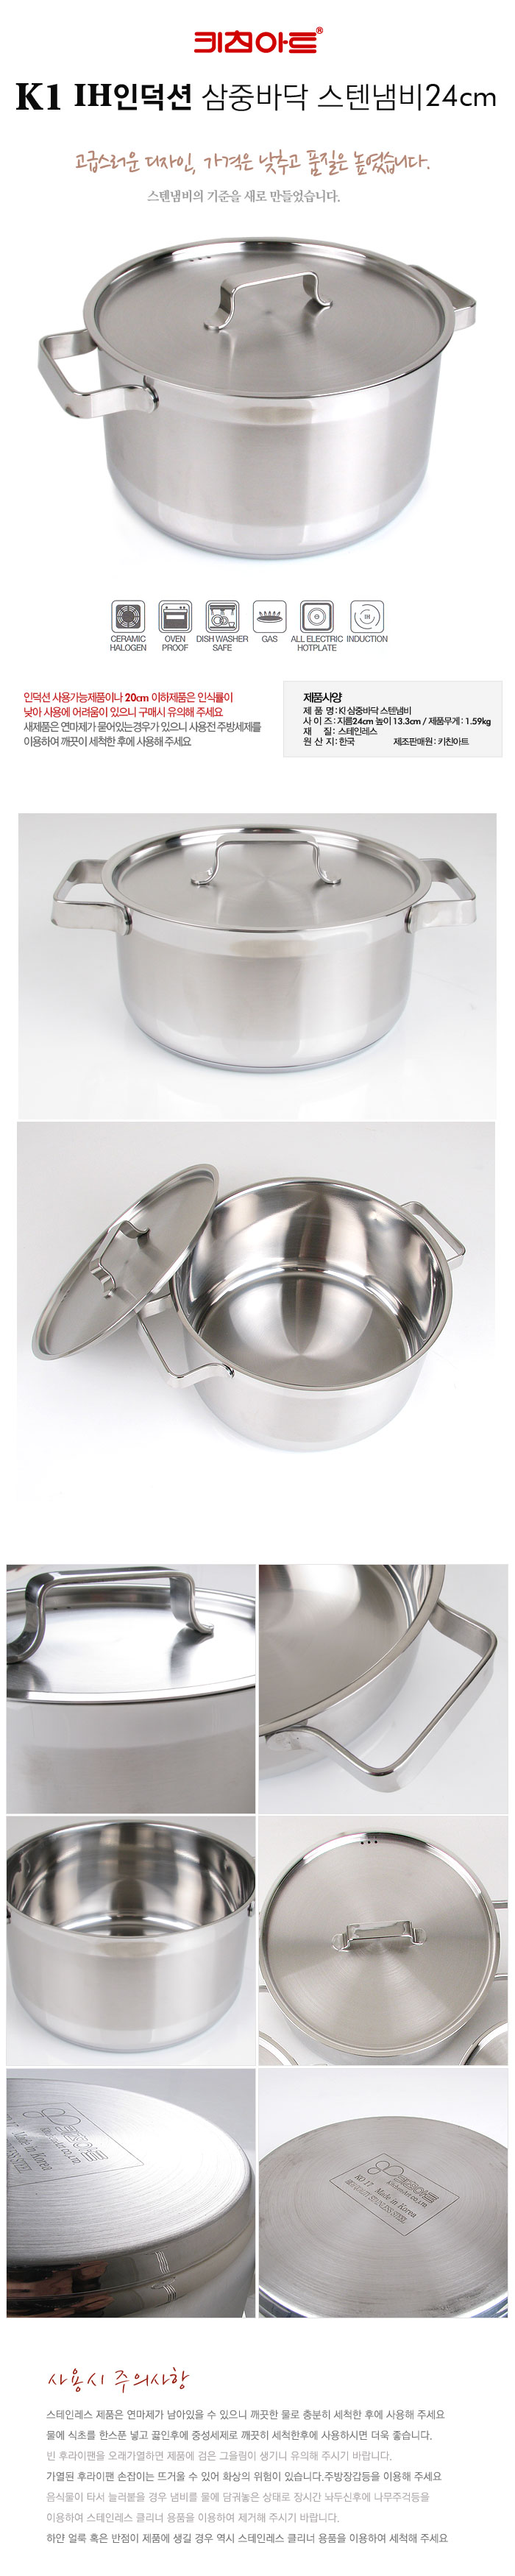 [ KITCHENART ] KitchenArt K1 de inducción IH 3ply olla inoxidable inferior -dos controlan pot 24cm